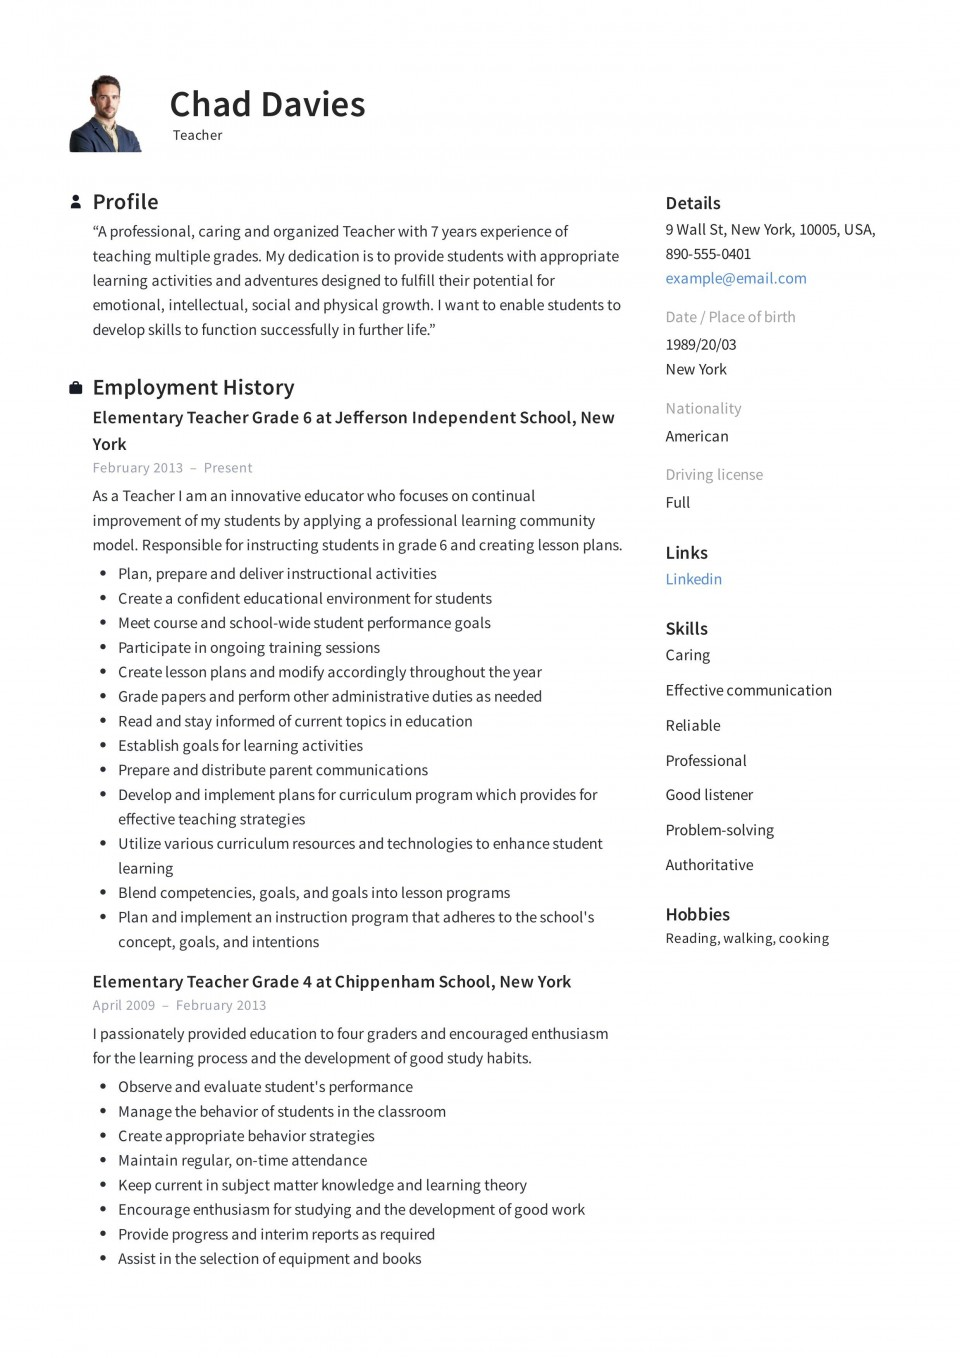 004 Incredible Resume Example For Teaching Job High Def  Sample Position In College Format960